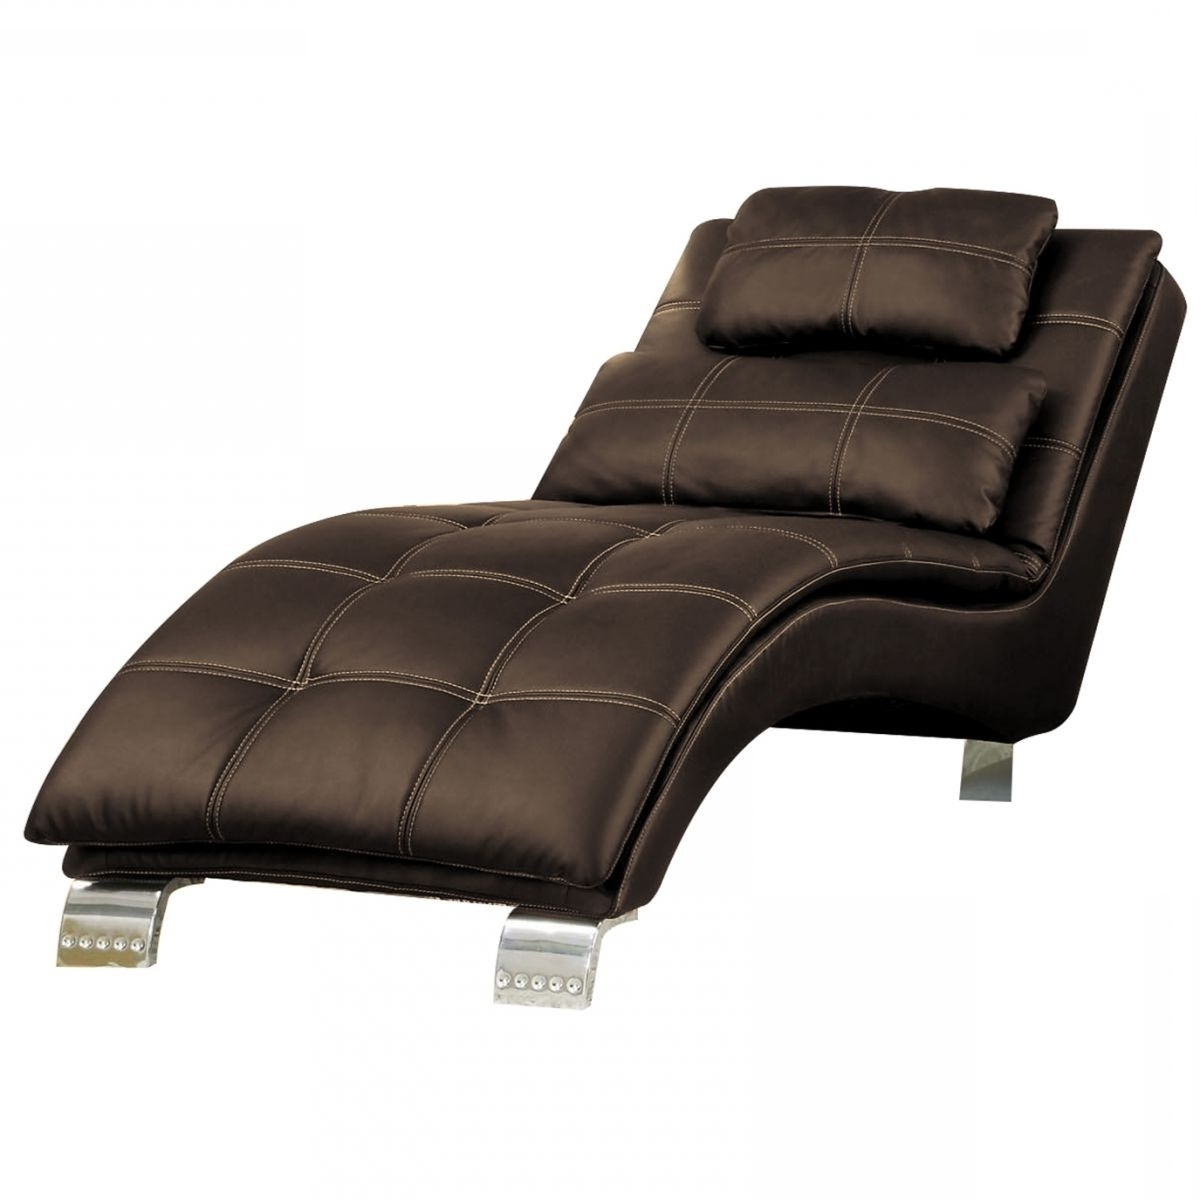 Most Recently Released Brown Chaise Lounges Regarding Badcock & More (View 8 of 15)